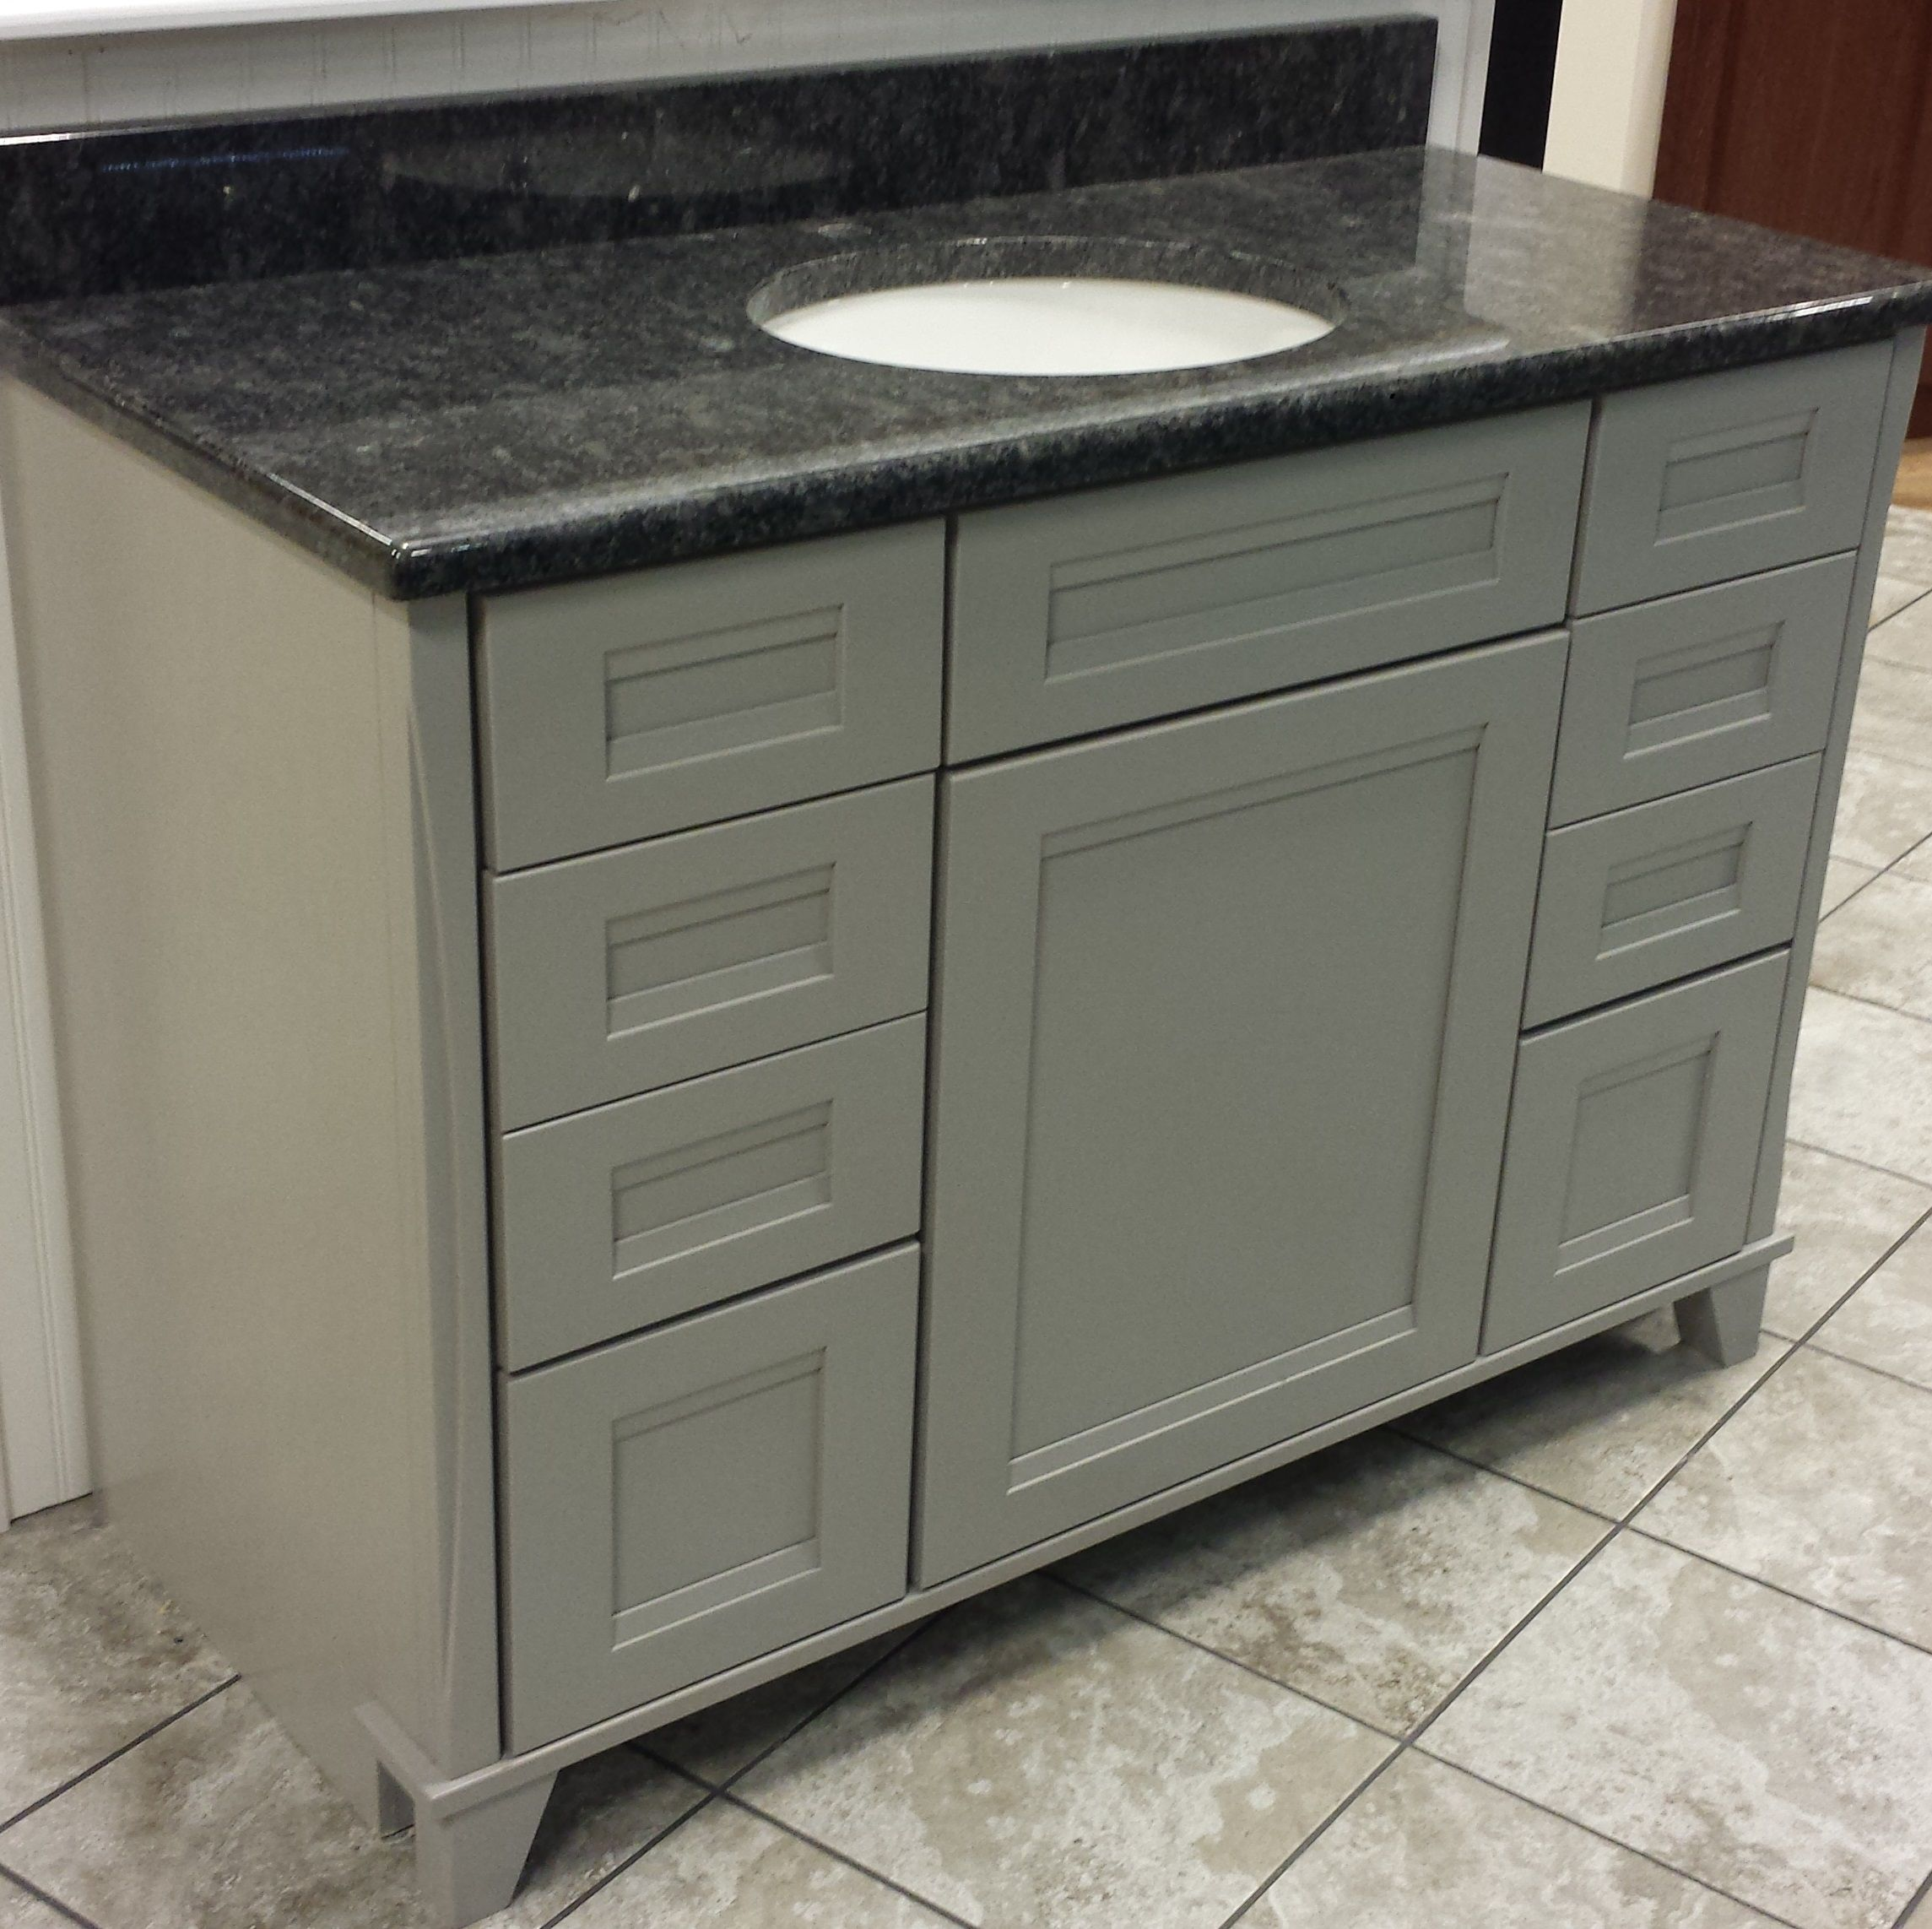 vanity home ideas kraftmaid awesome cabinet inspiration about furniture creative sizes stunning htm in with best designing decorating remodel